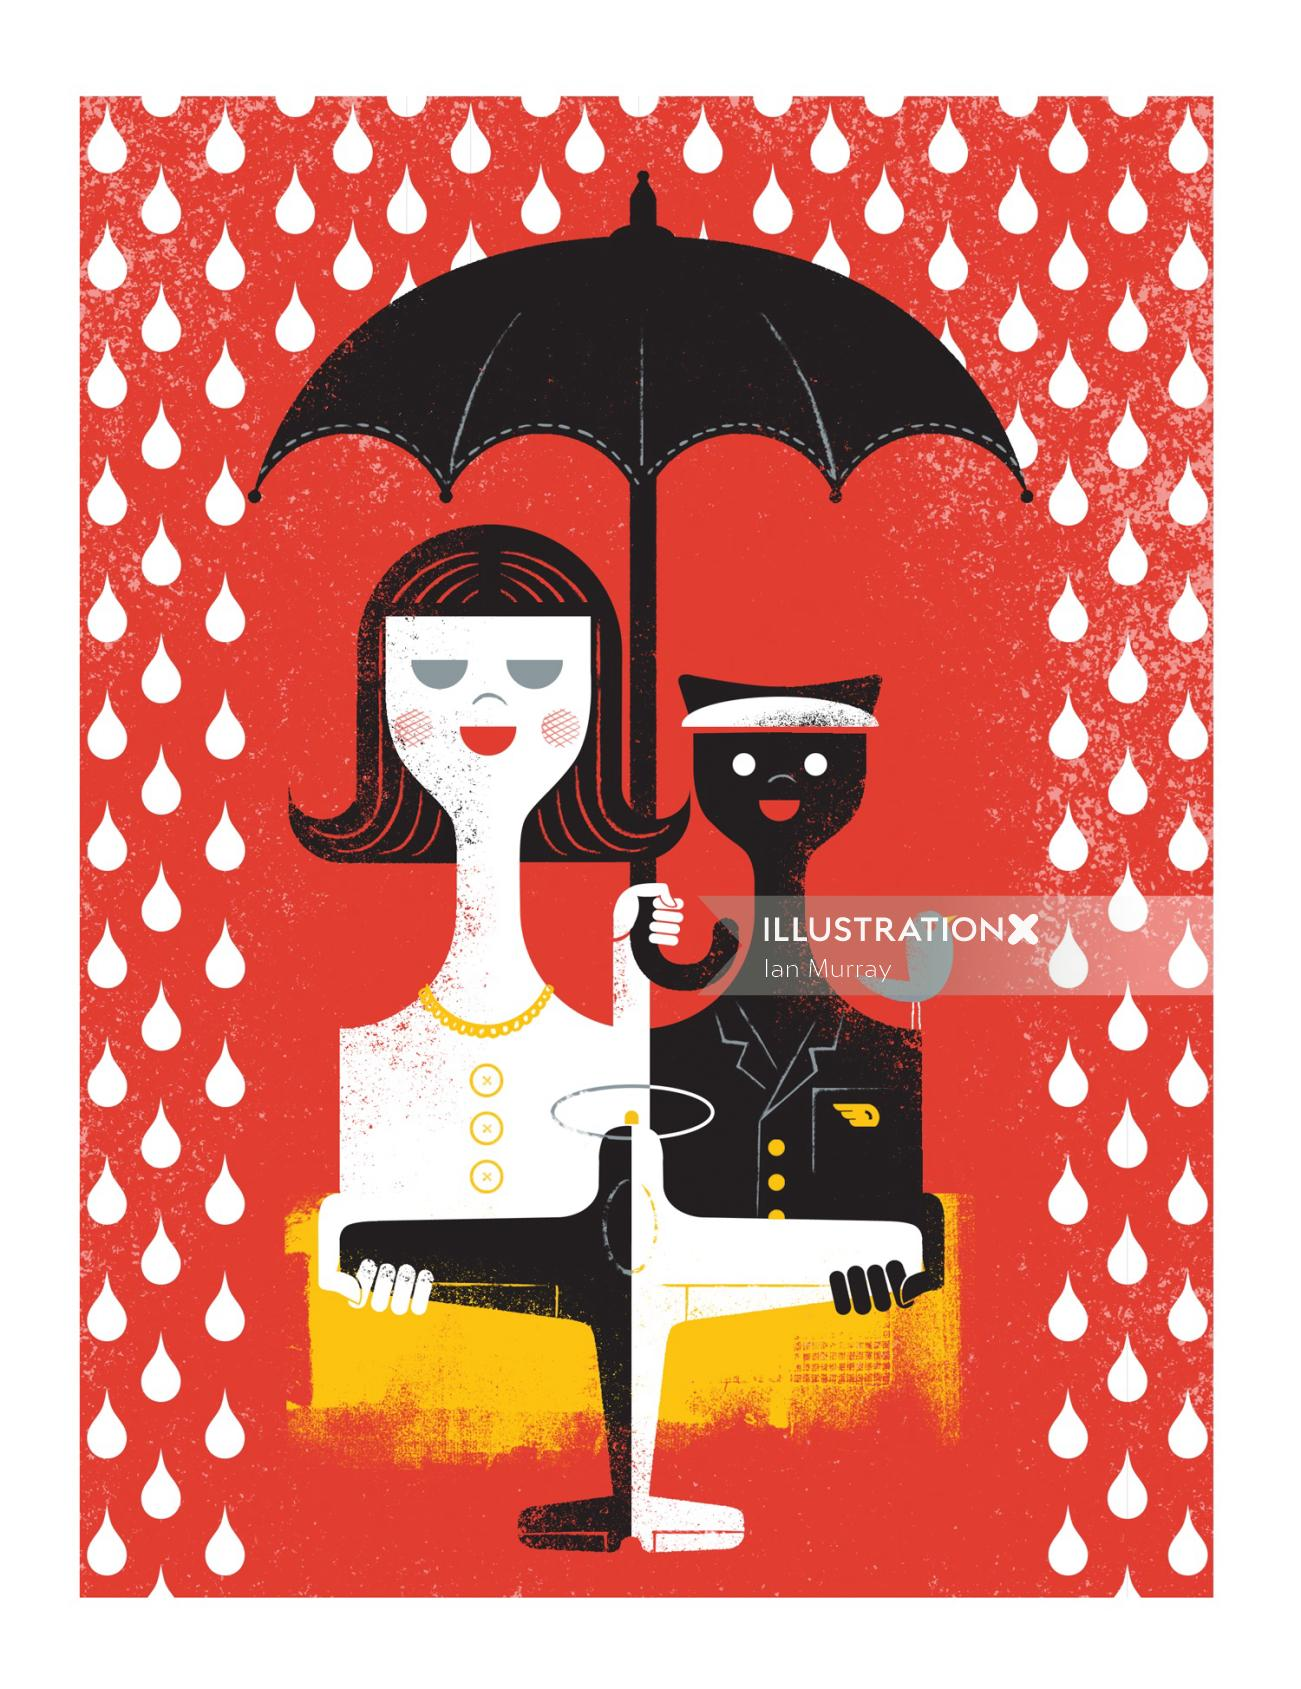 Semi abstract image of a girl with umbrella